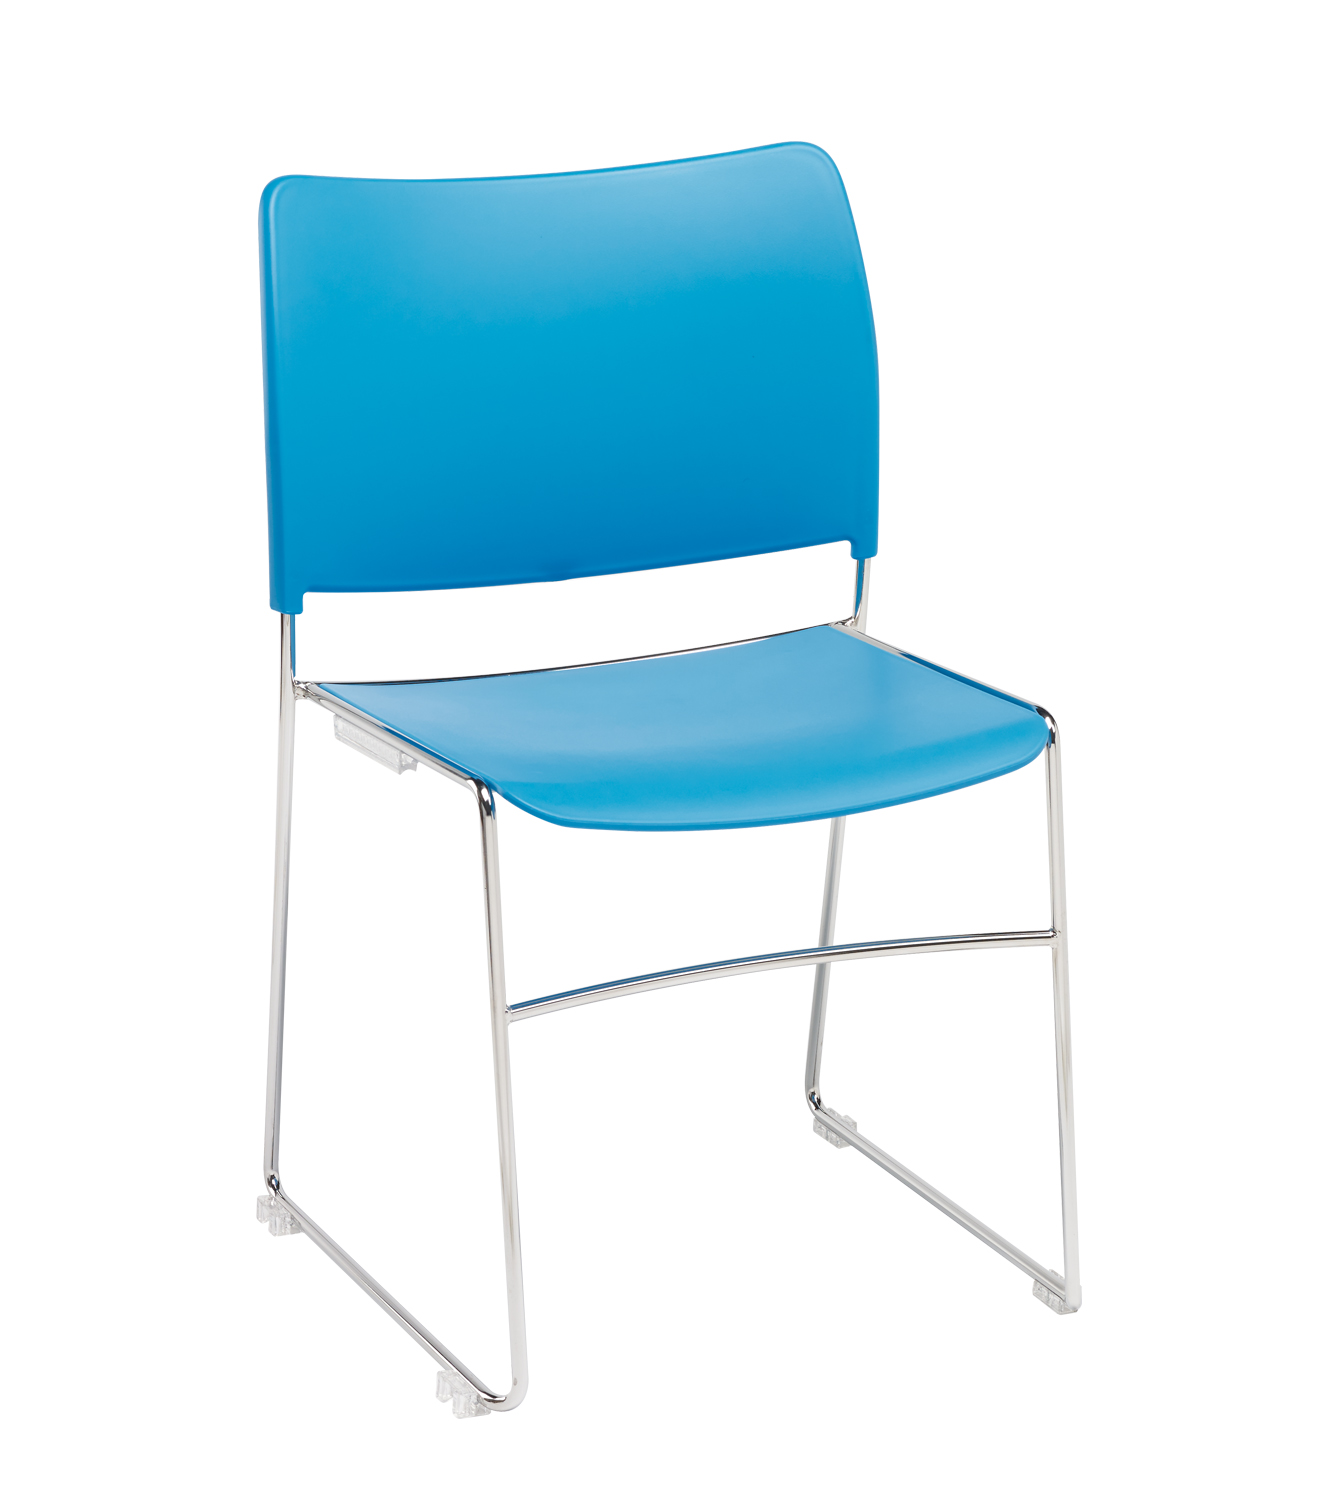 Modius-Blue-Plastic-Stackable-Meeting-Chair-with-Integral-Linking